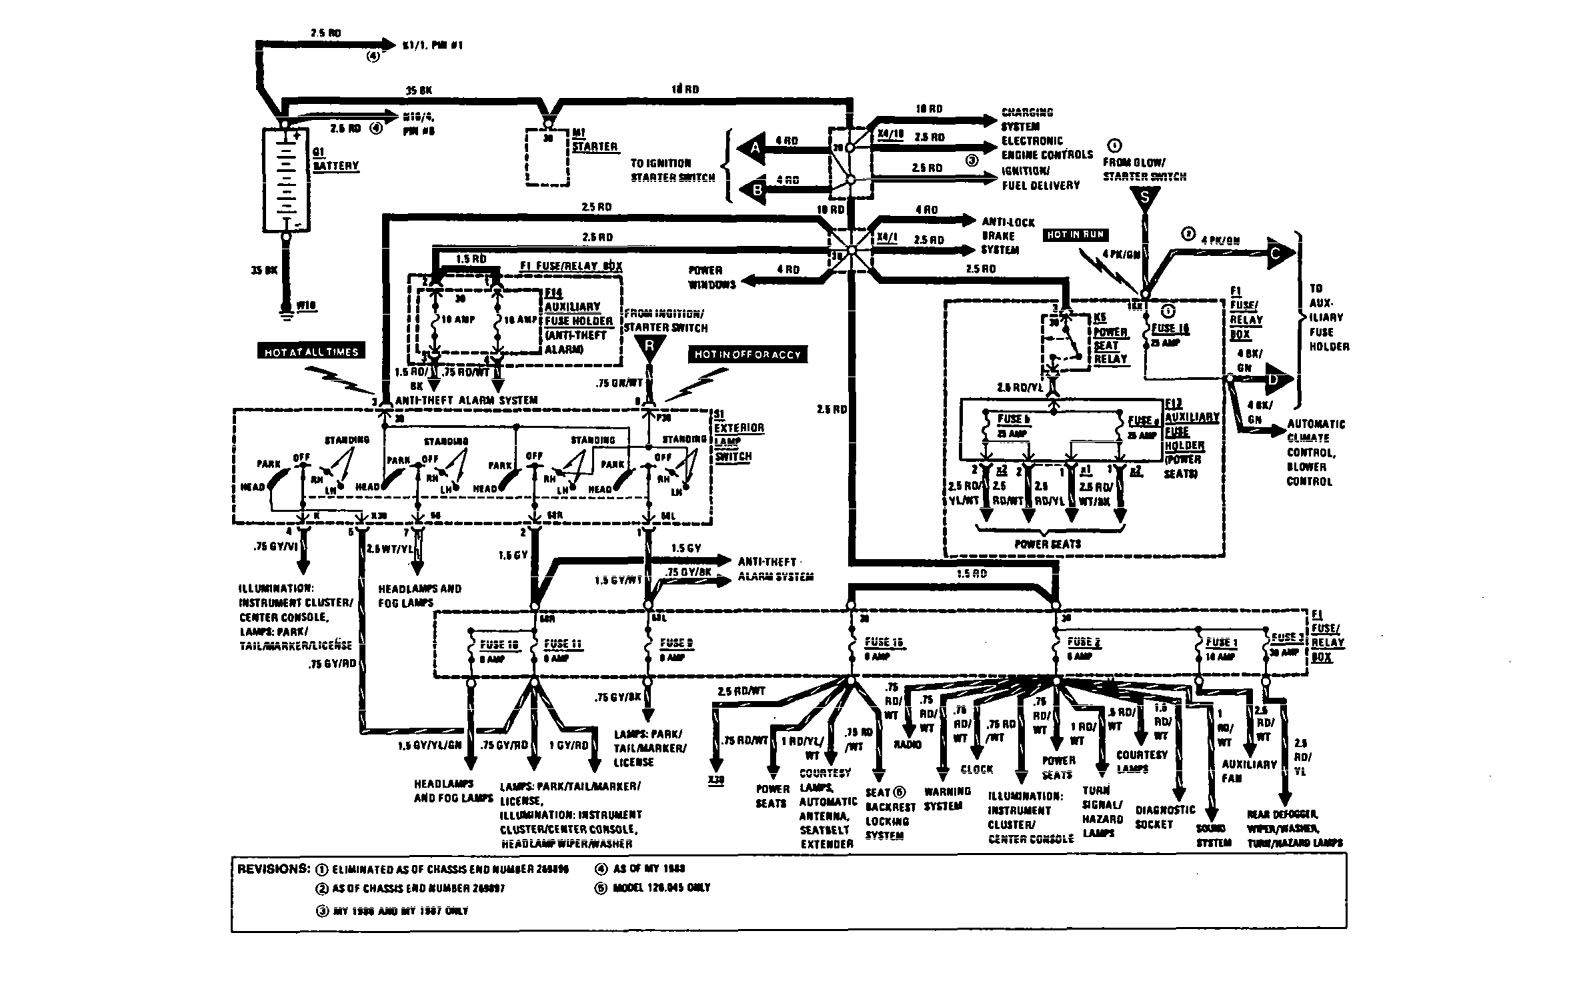 Mercedes Benz 560SEL 1991 wiring diagrams power